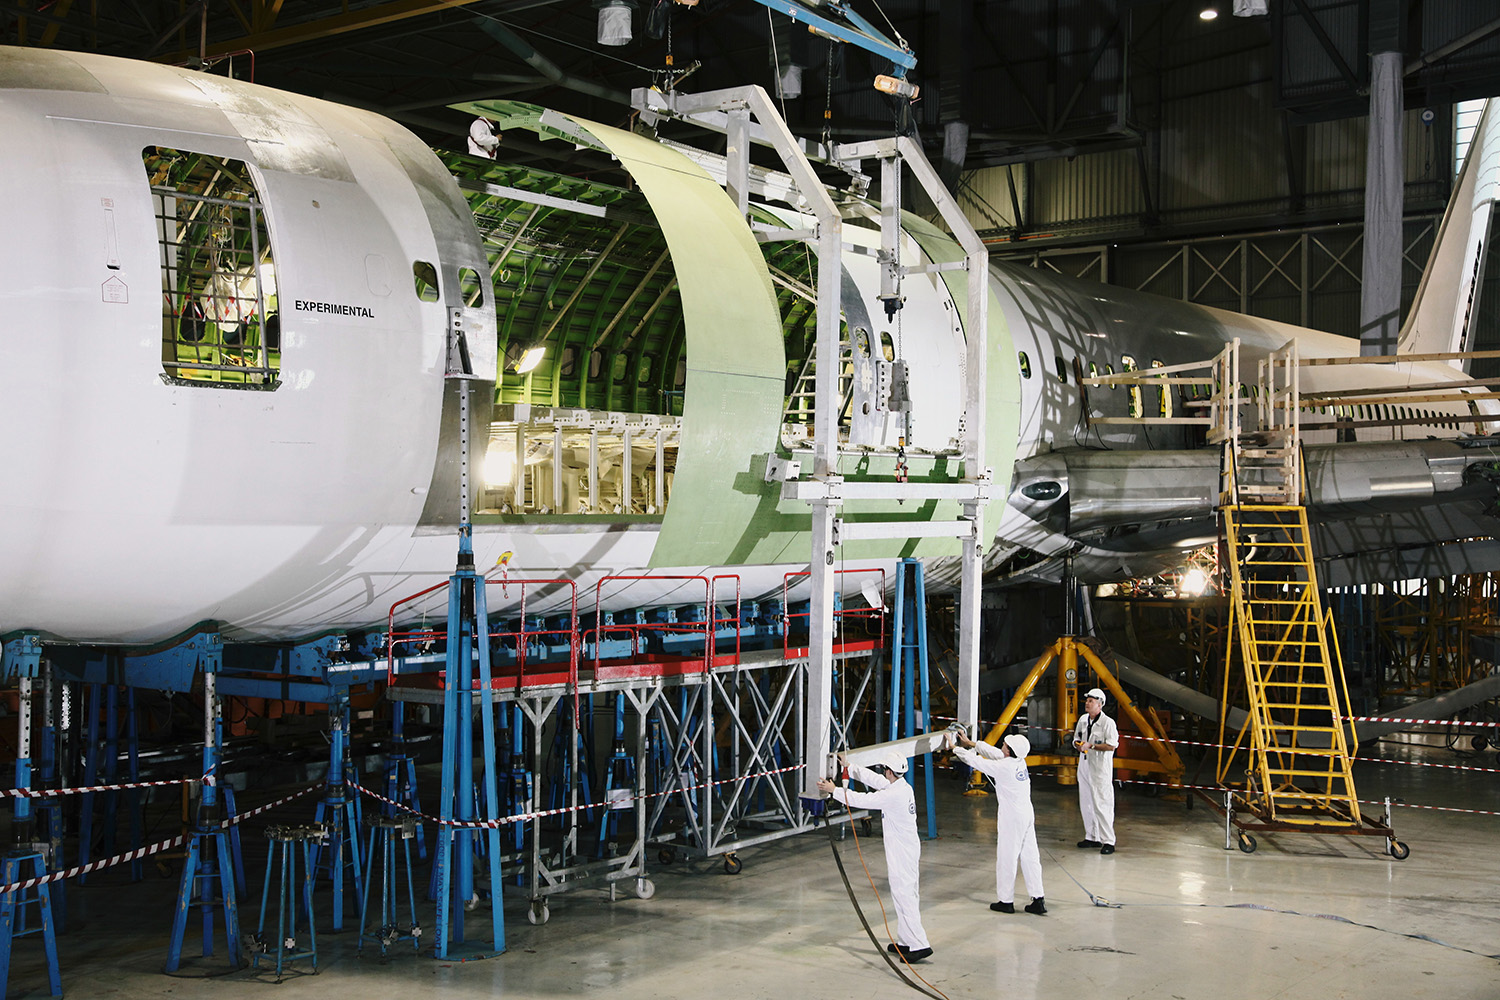 IAI Converts Boeing 737-700 BDSF From Passenger To Freighter 1